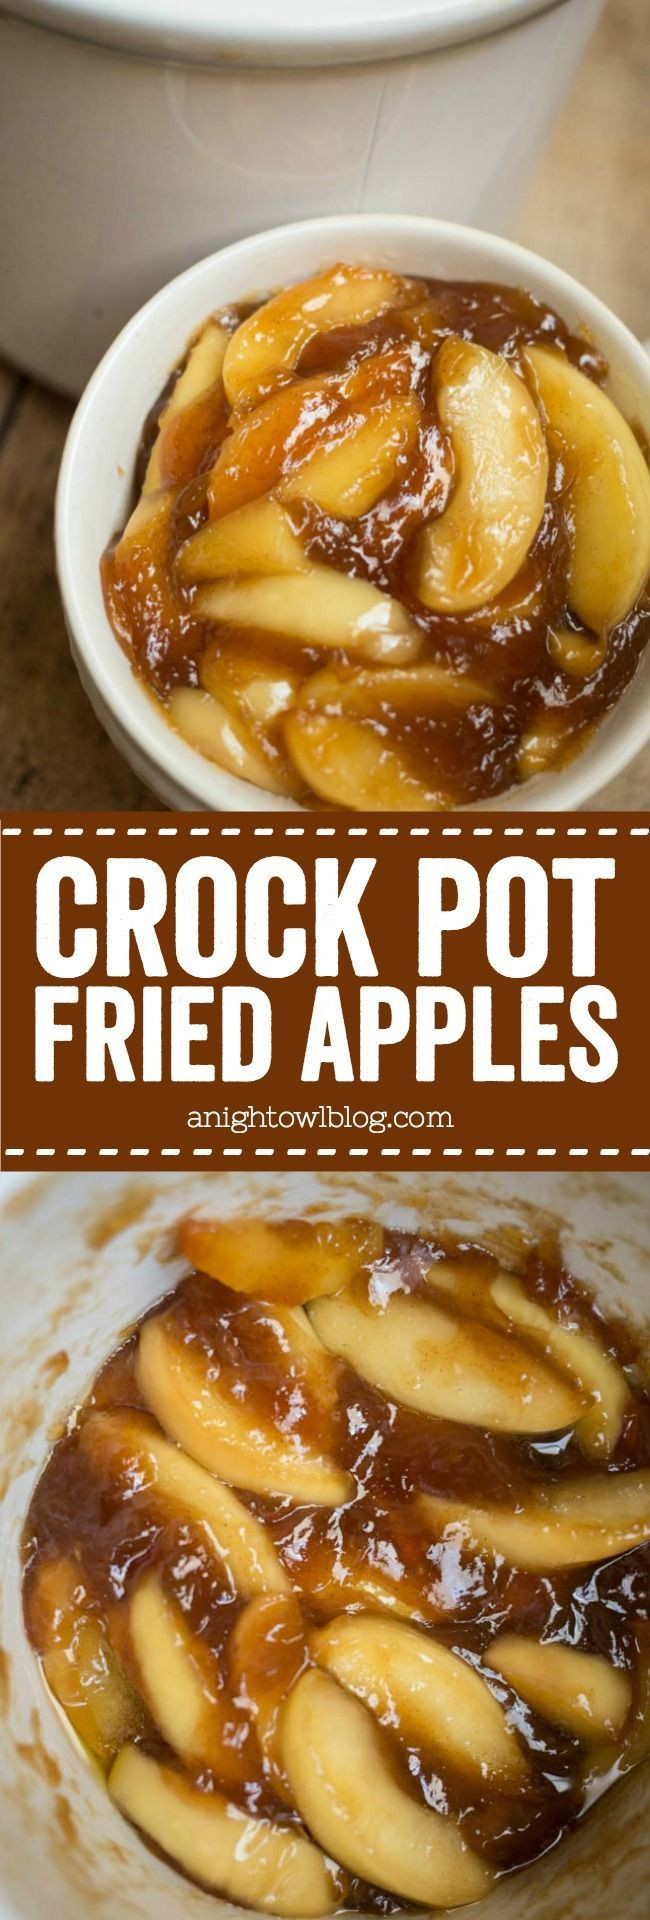 Crockpot Side Dishes For Thanksgiving  Best 25 Thanksgiving side dishes ideas on Pinterest